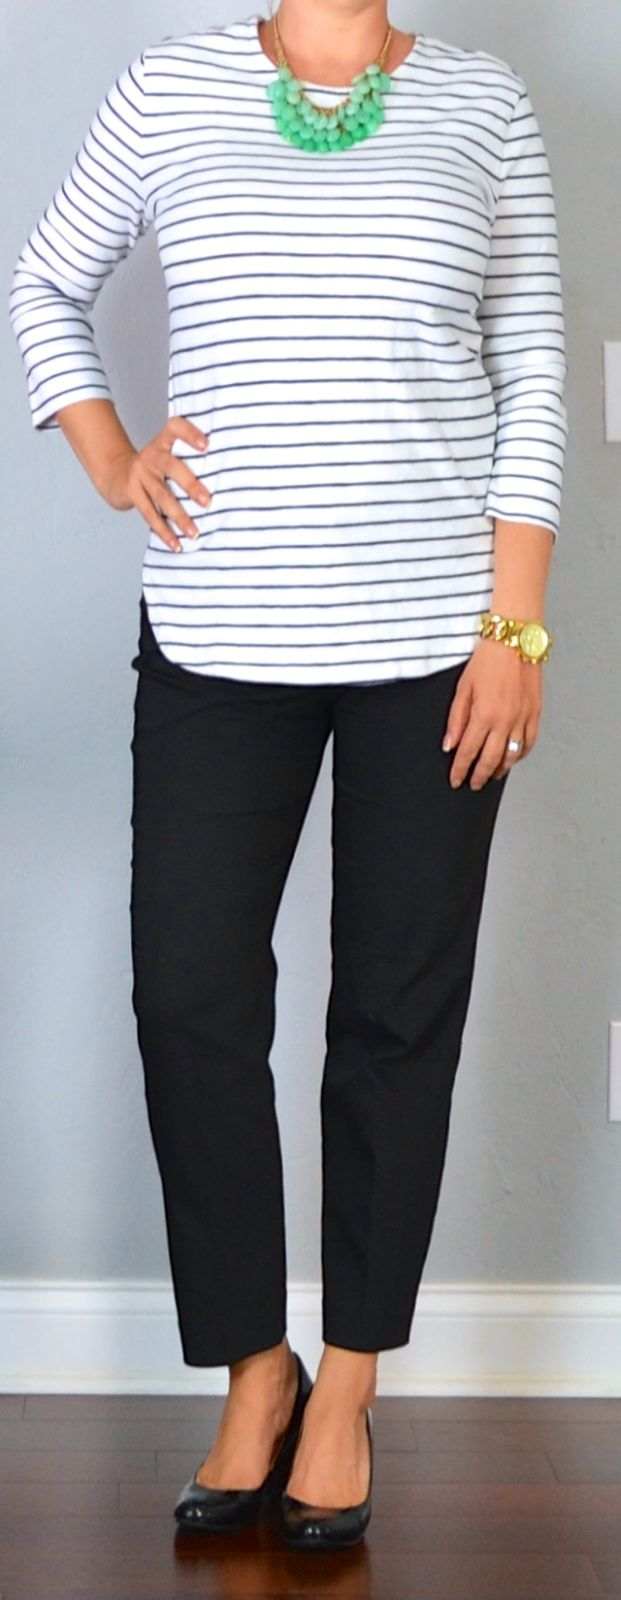 17 Best ideas about Black Ankle Pants on Pinterest | Ankle pants ...